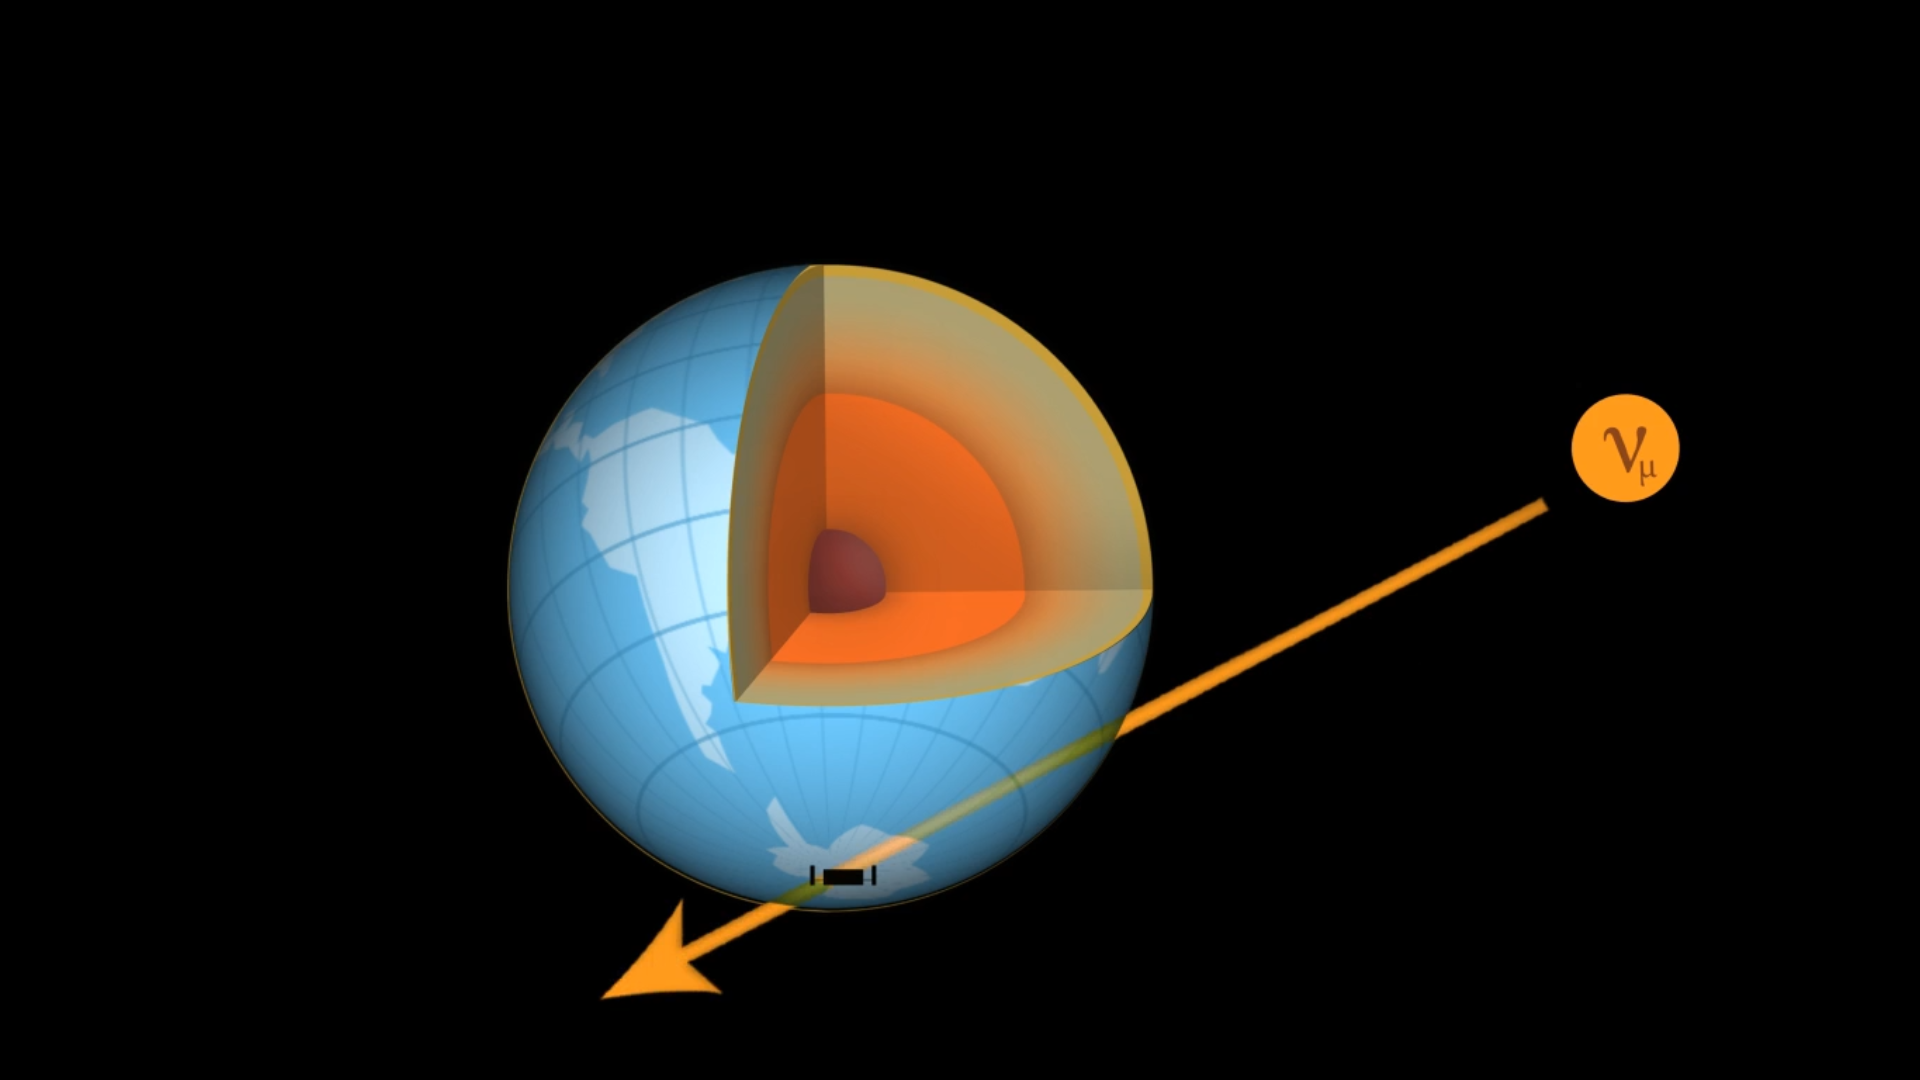 Animation: Neutrinos reaching IceCube from different directions